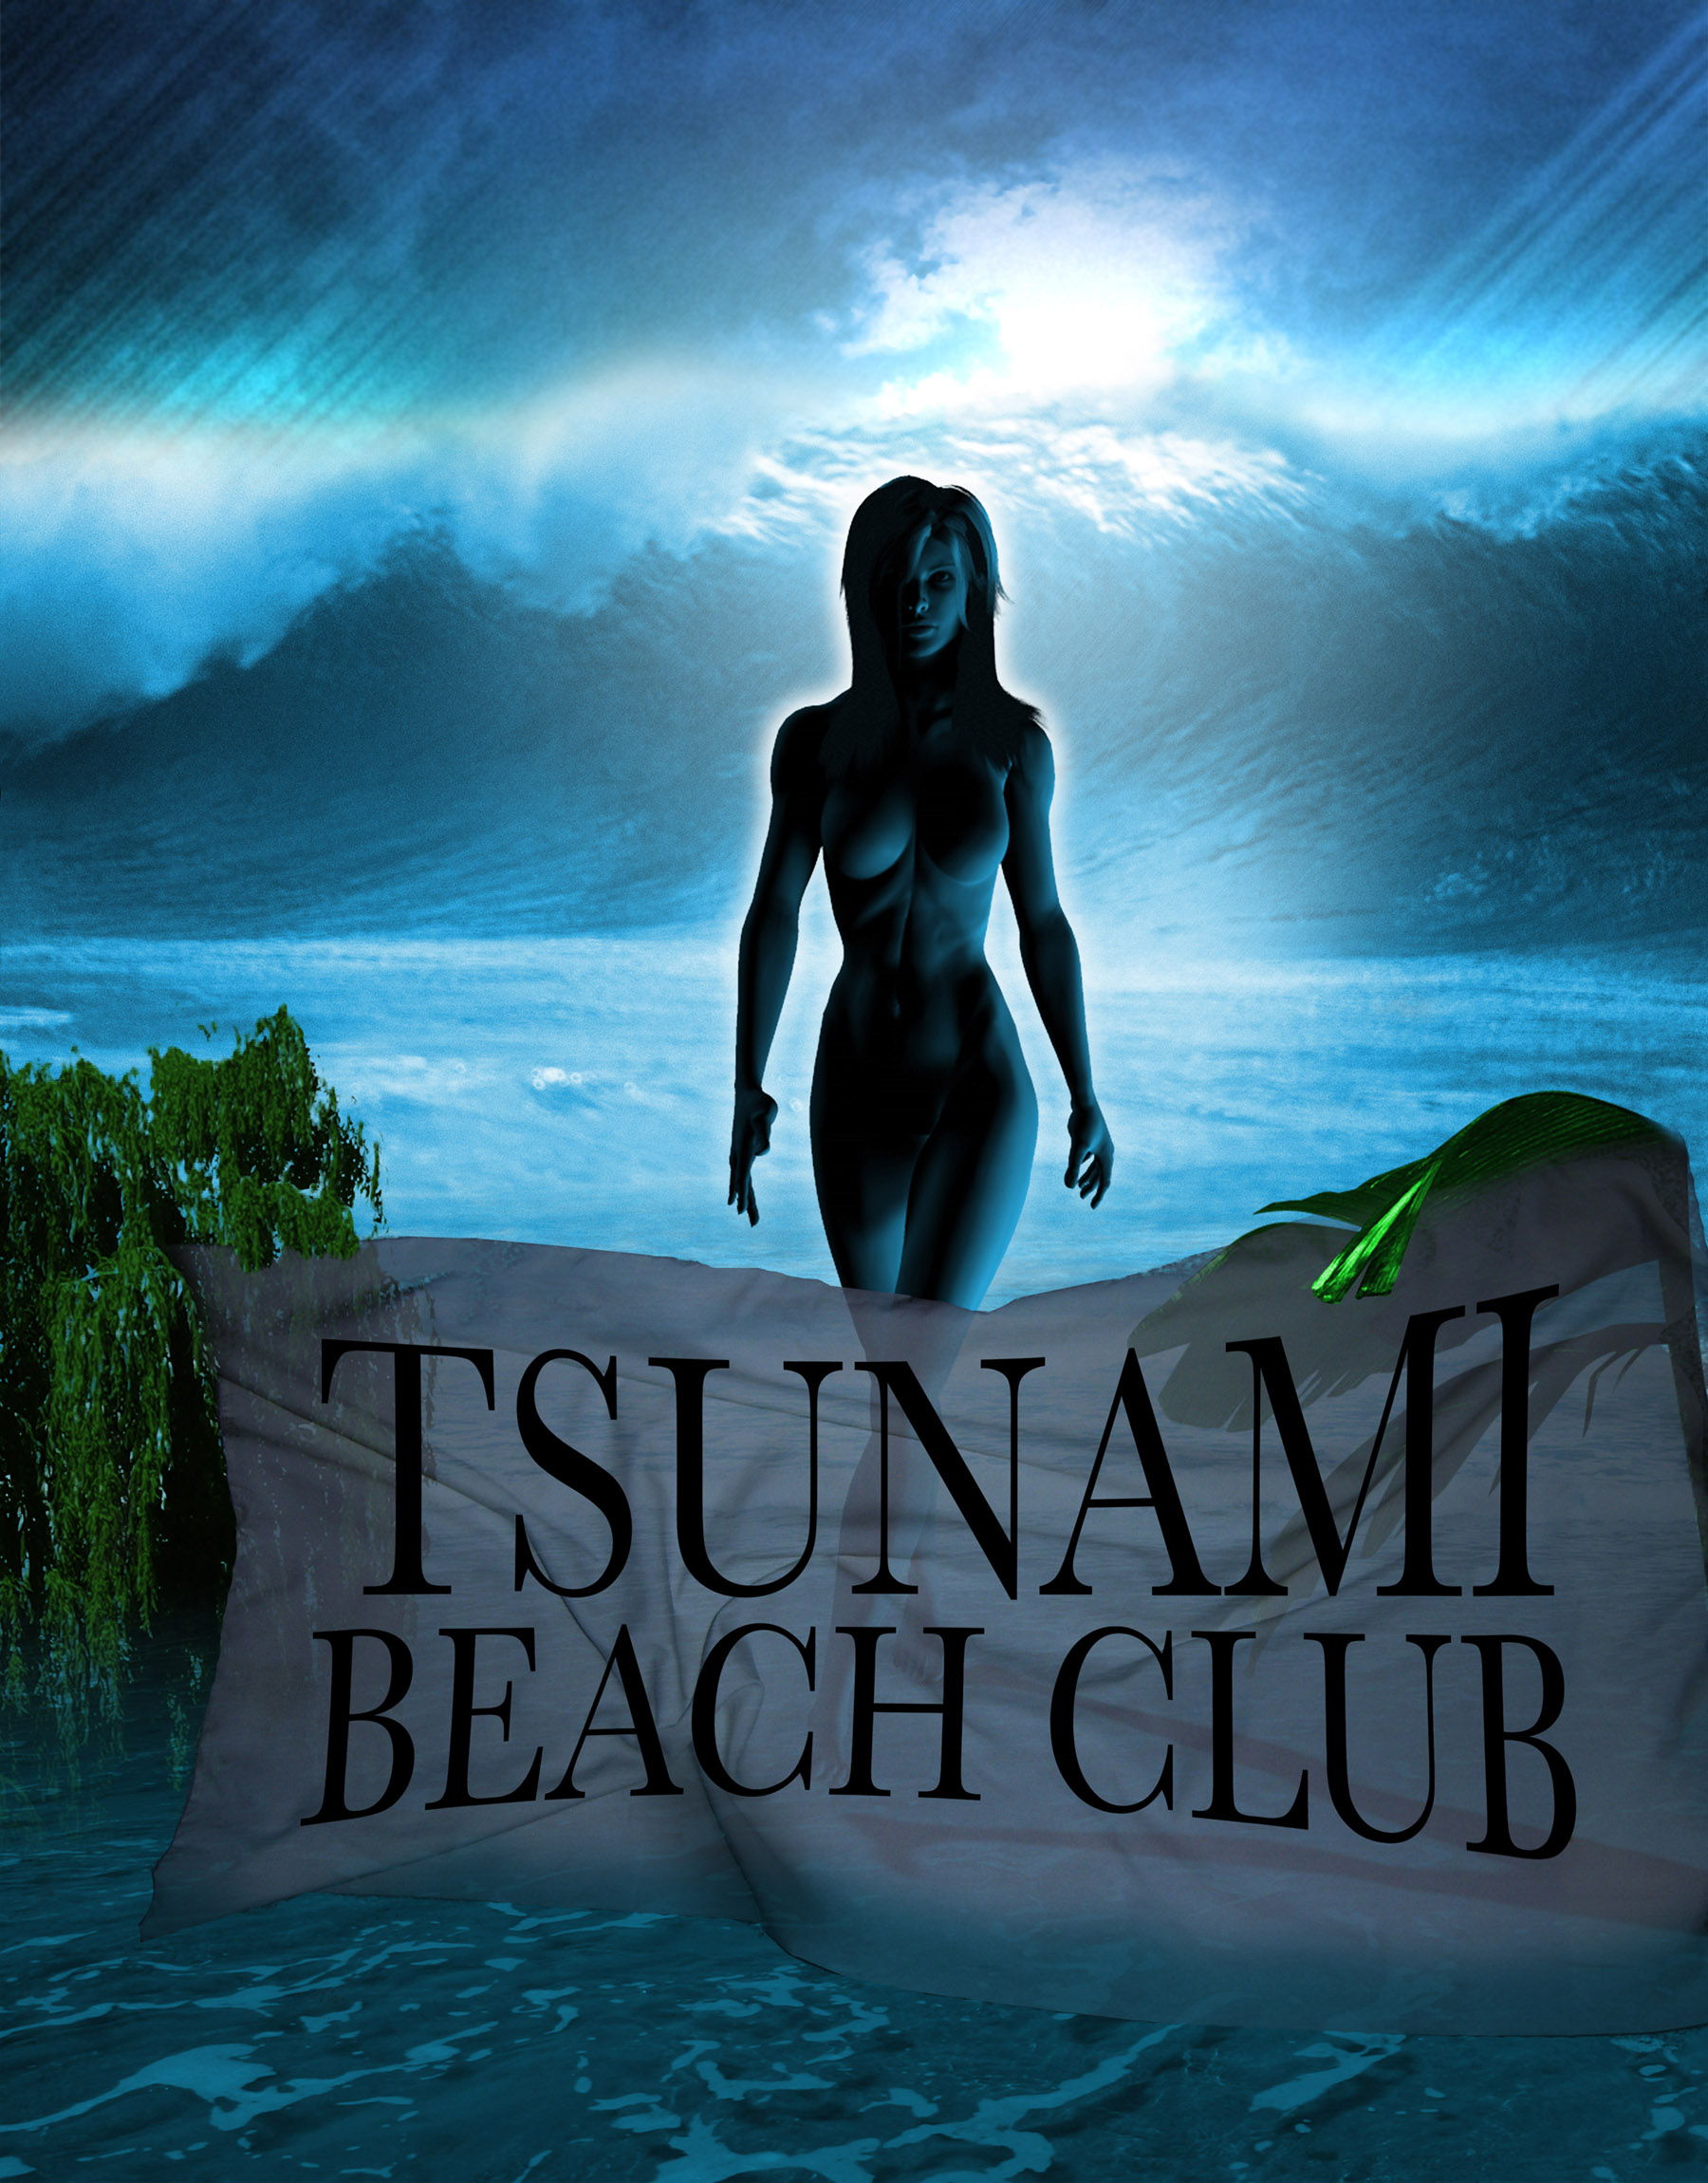 Tsunami Beach Club Short Circuit Movie Posters From Poster Shop Film